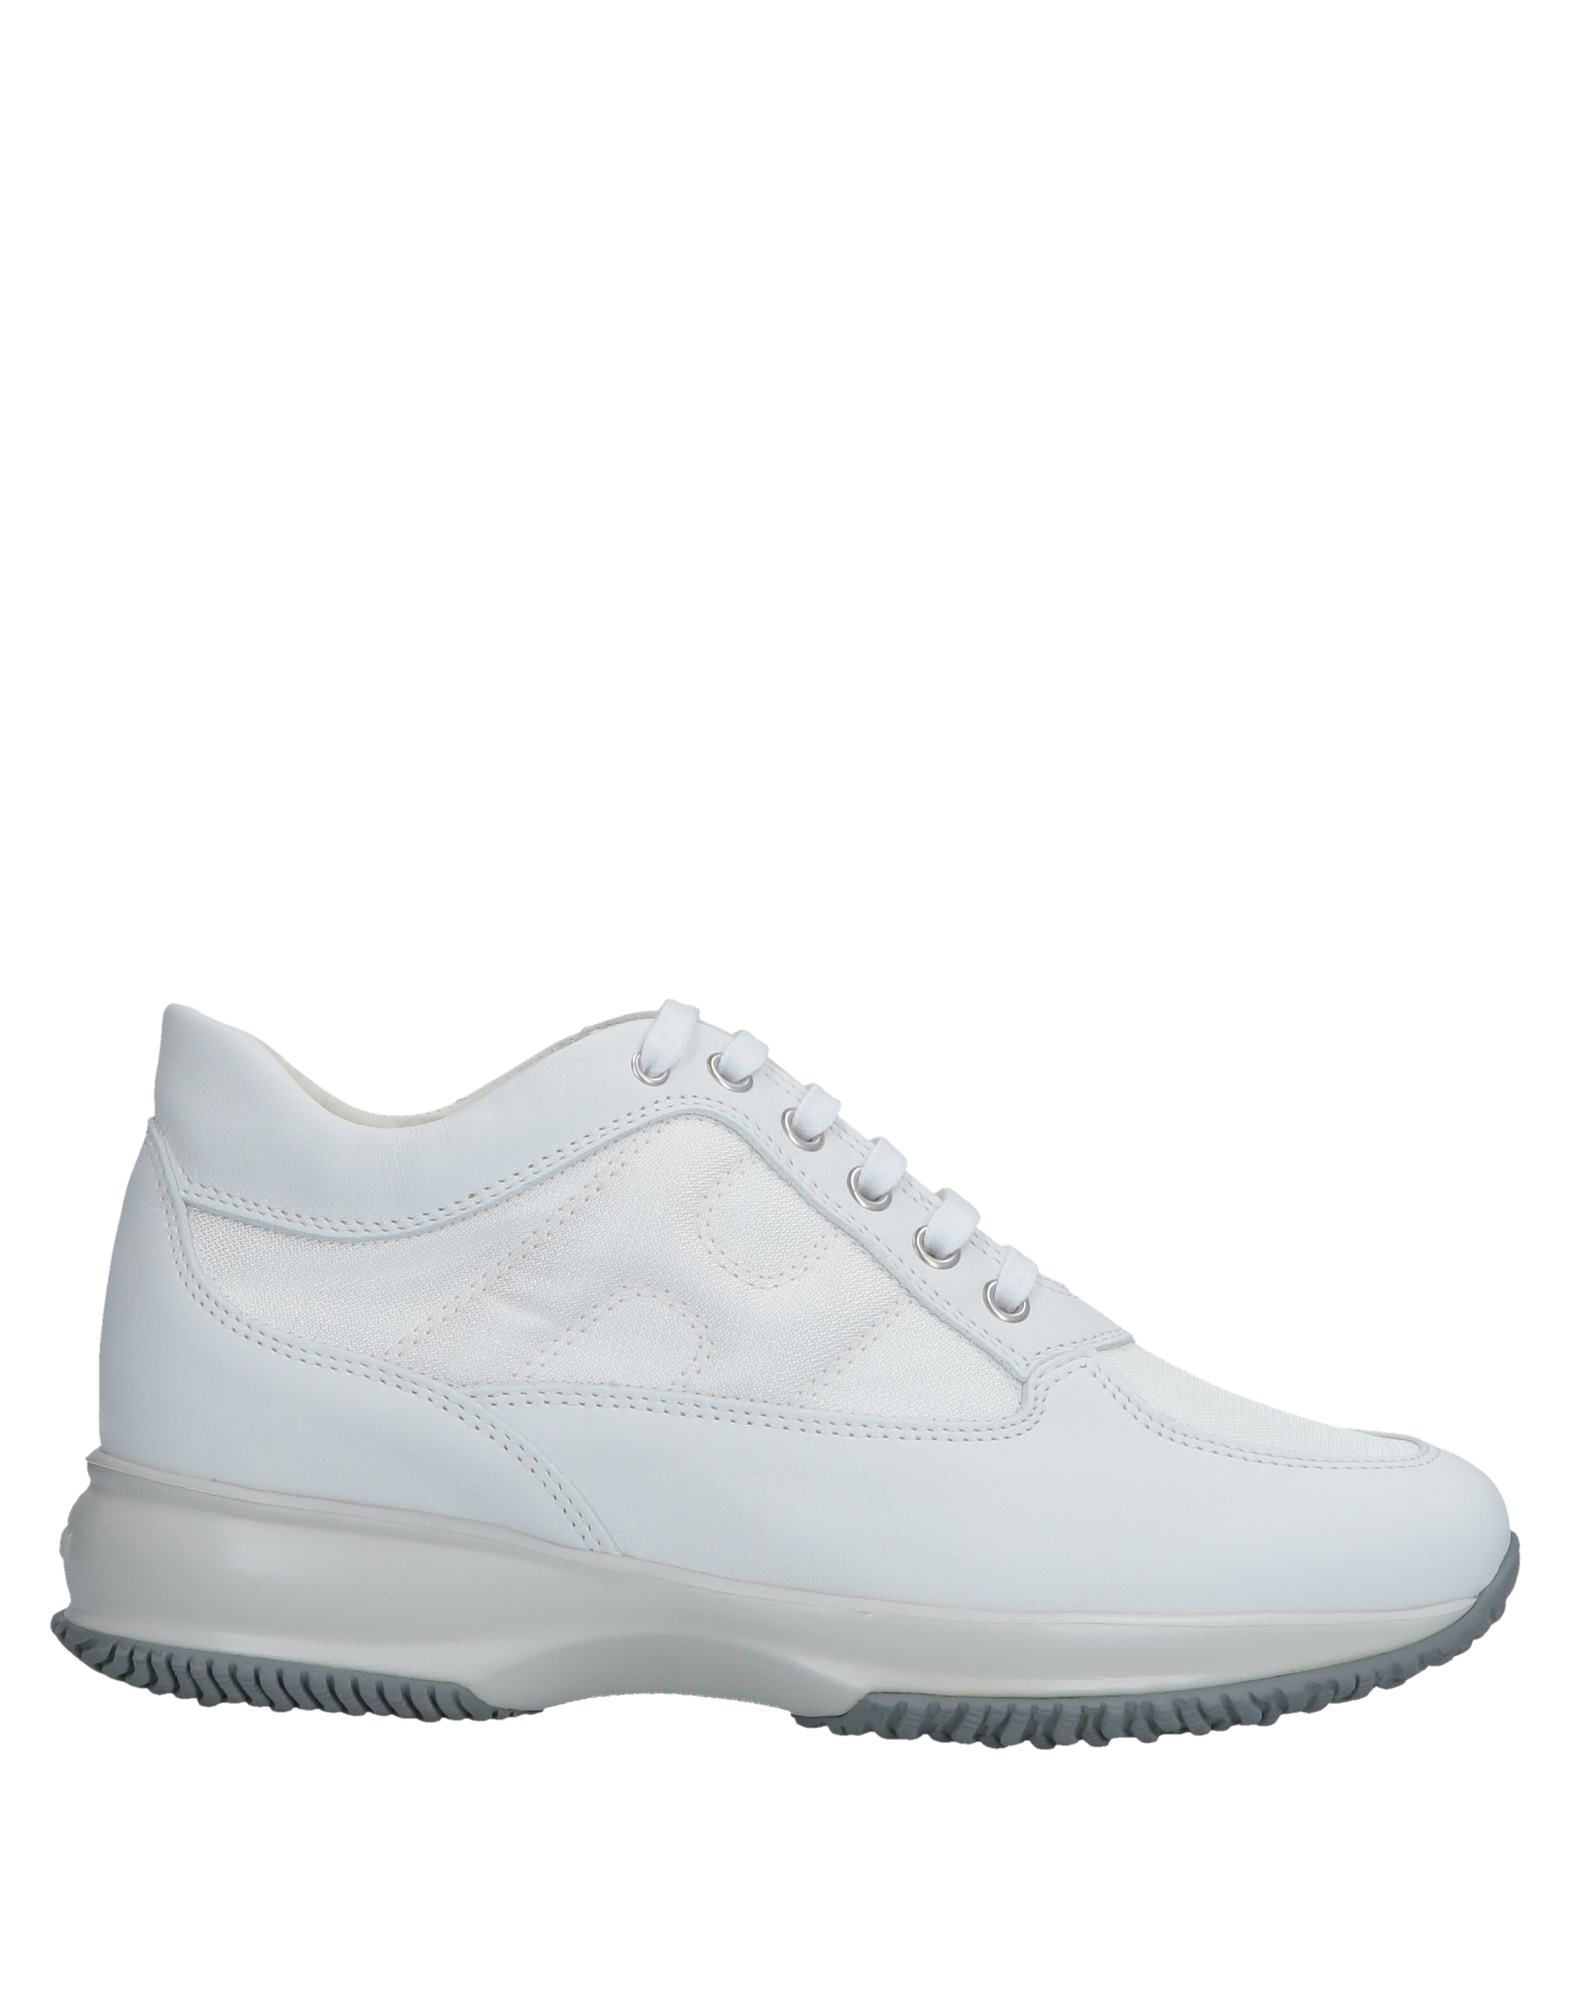 Hogan Sneakers Sneakers - Women Hogan Sneakers Hogan online on  United Kingdom - 11573921UL 4c2b25